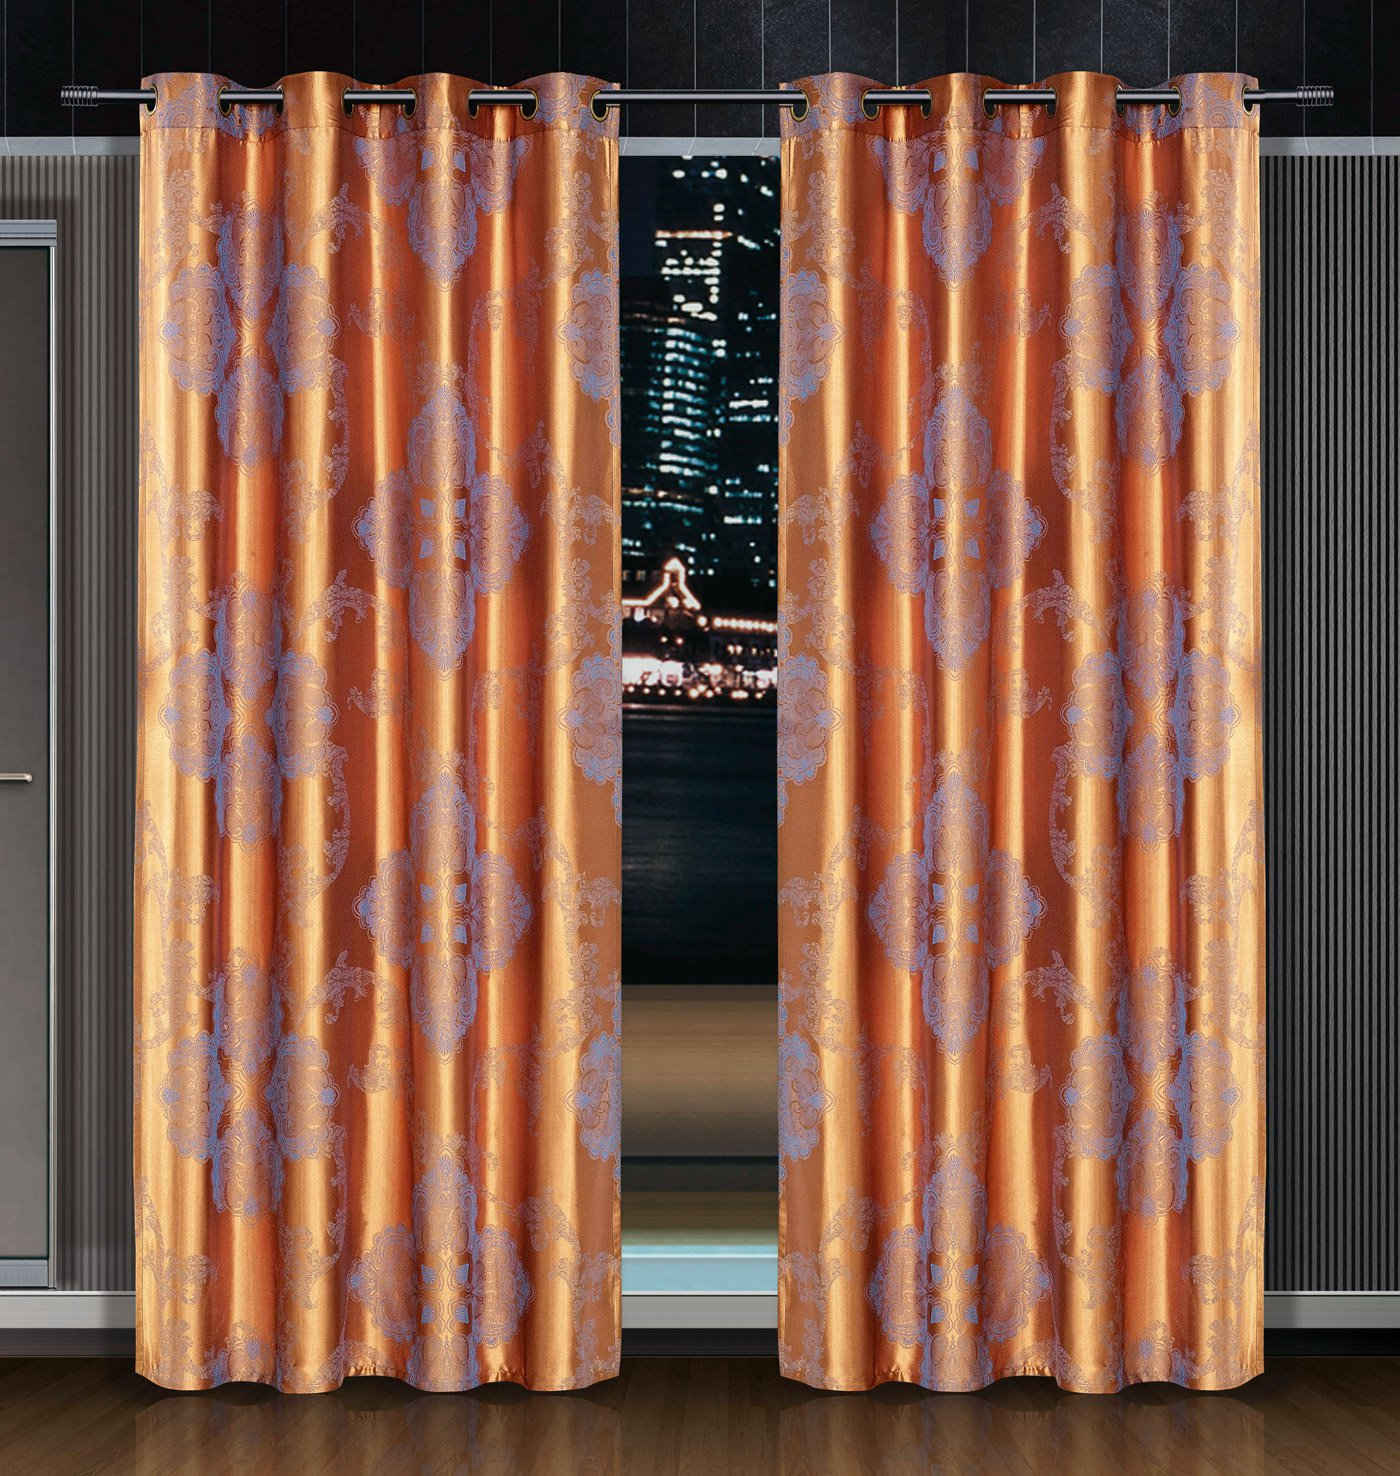 Freya Dolce Mela Damask Window Treatments Single Panel